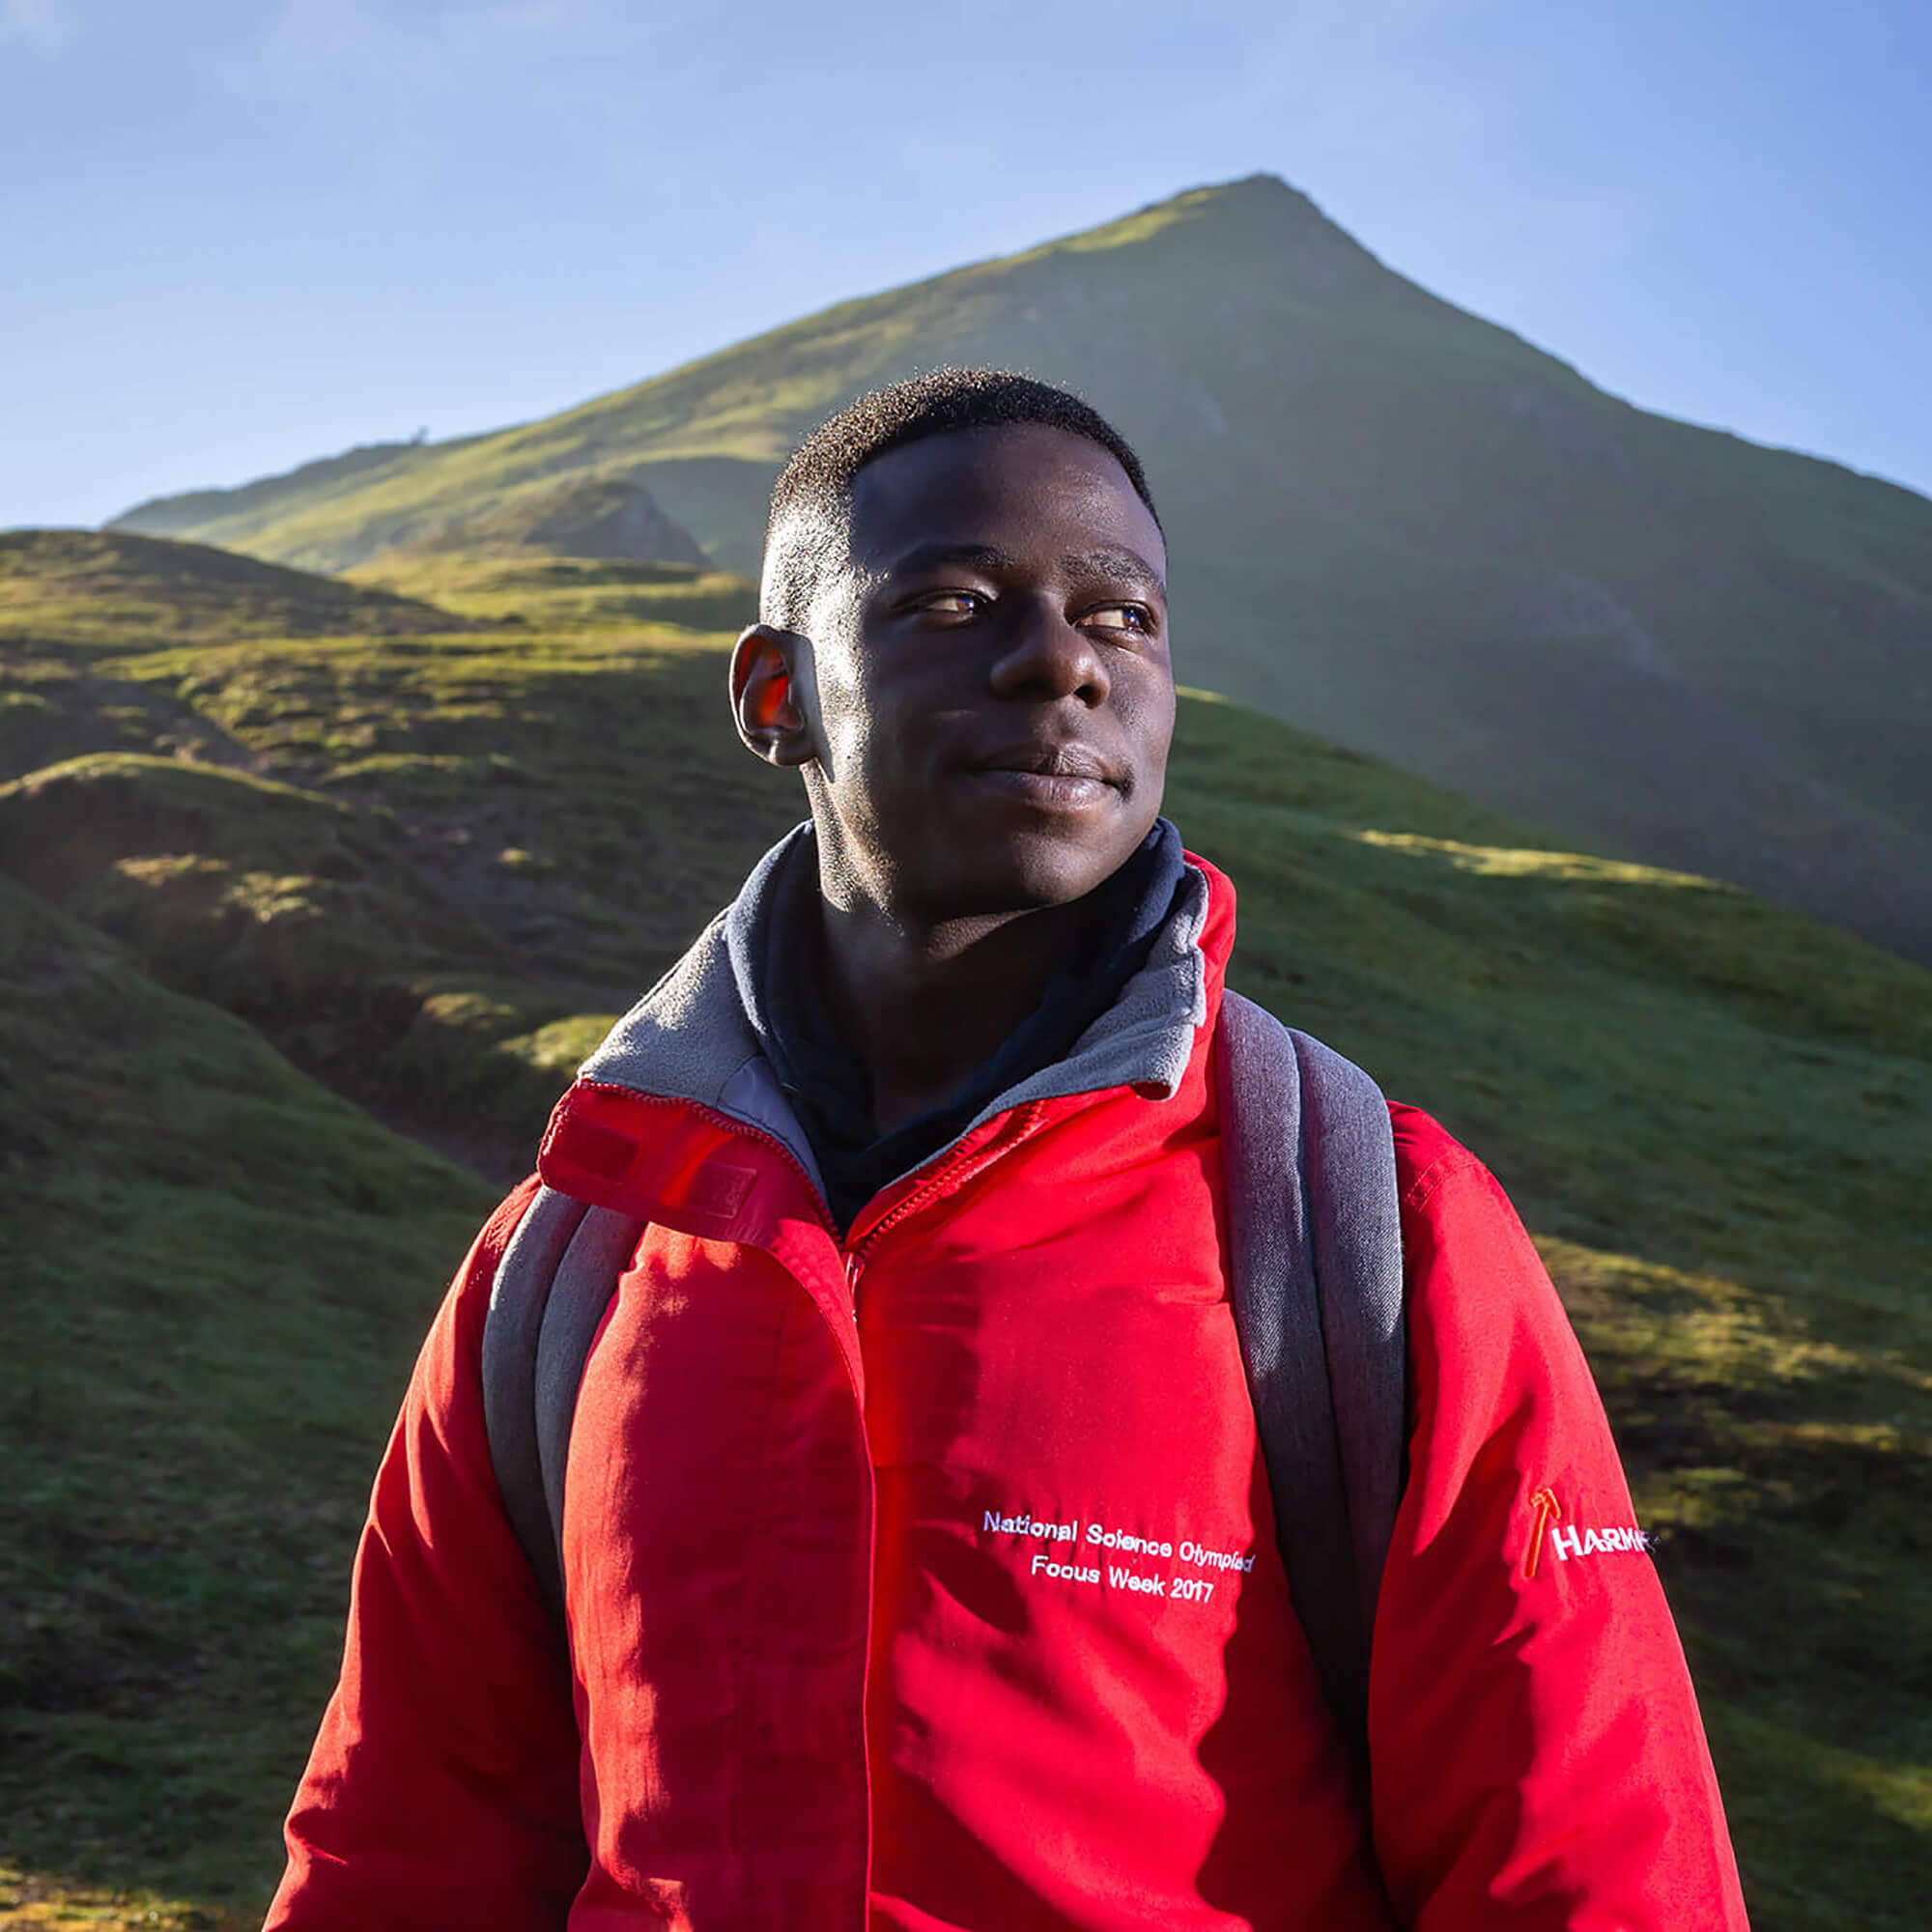 Sam standing next to a mountain wearing a red anorak.